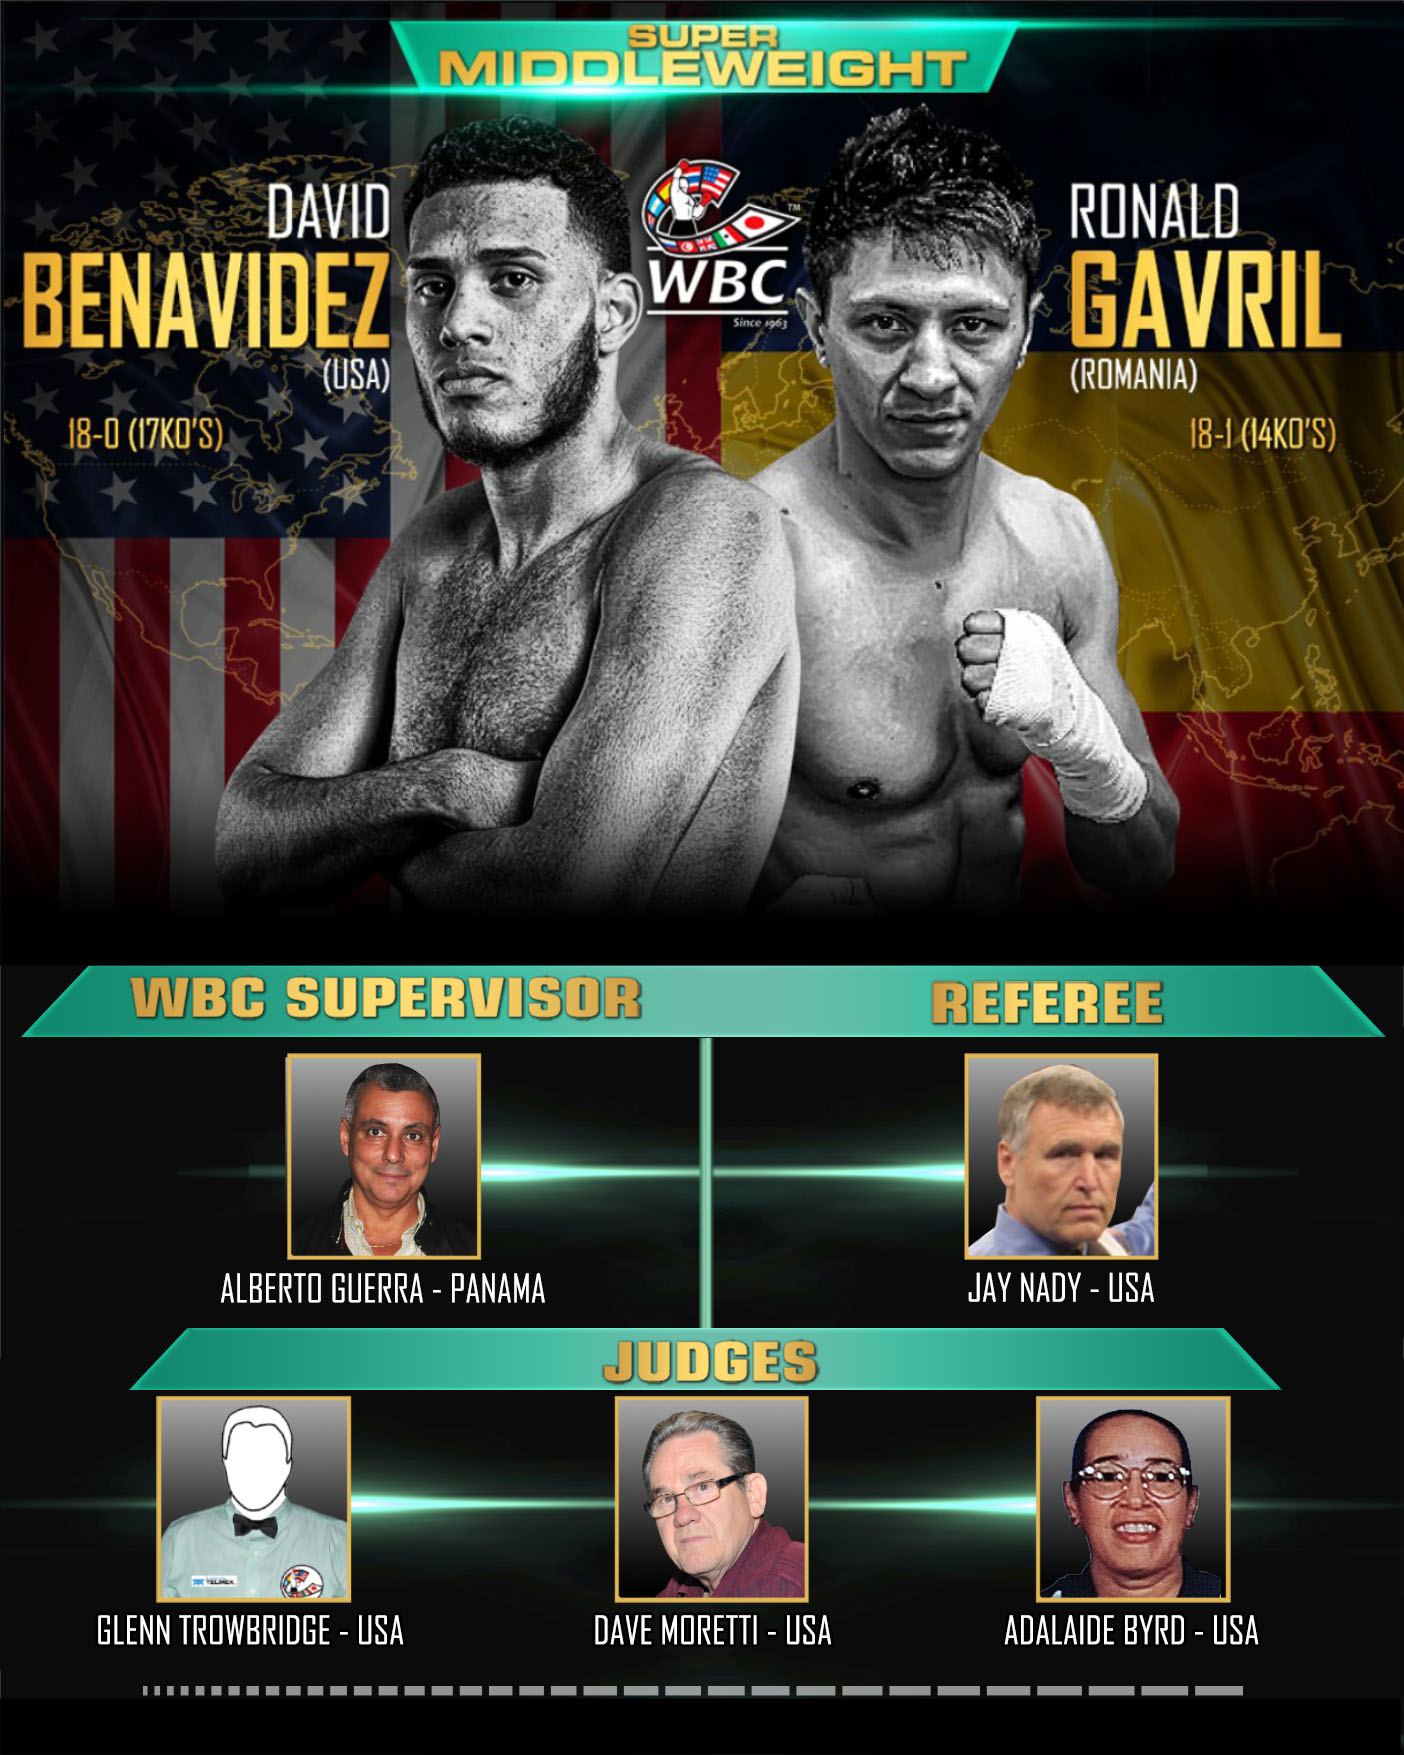 DAVID-BENAVIDEZ-VS-RONALD-GAVRIL-ring-officials